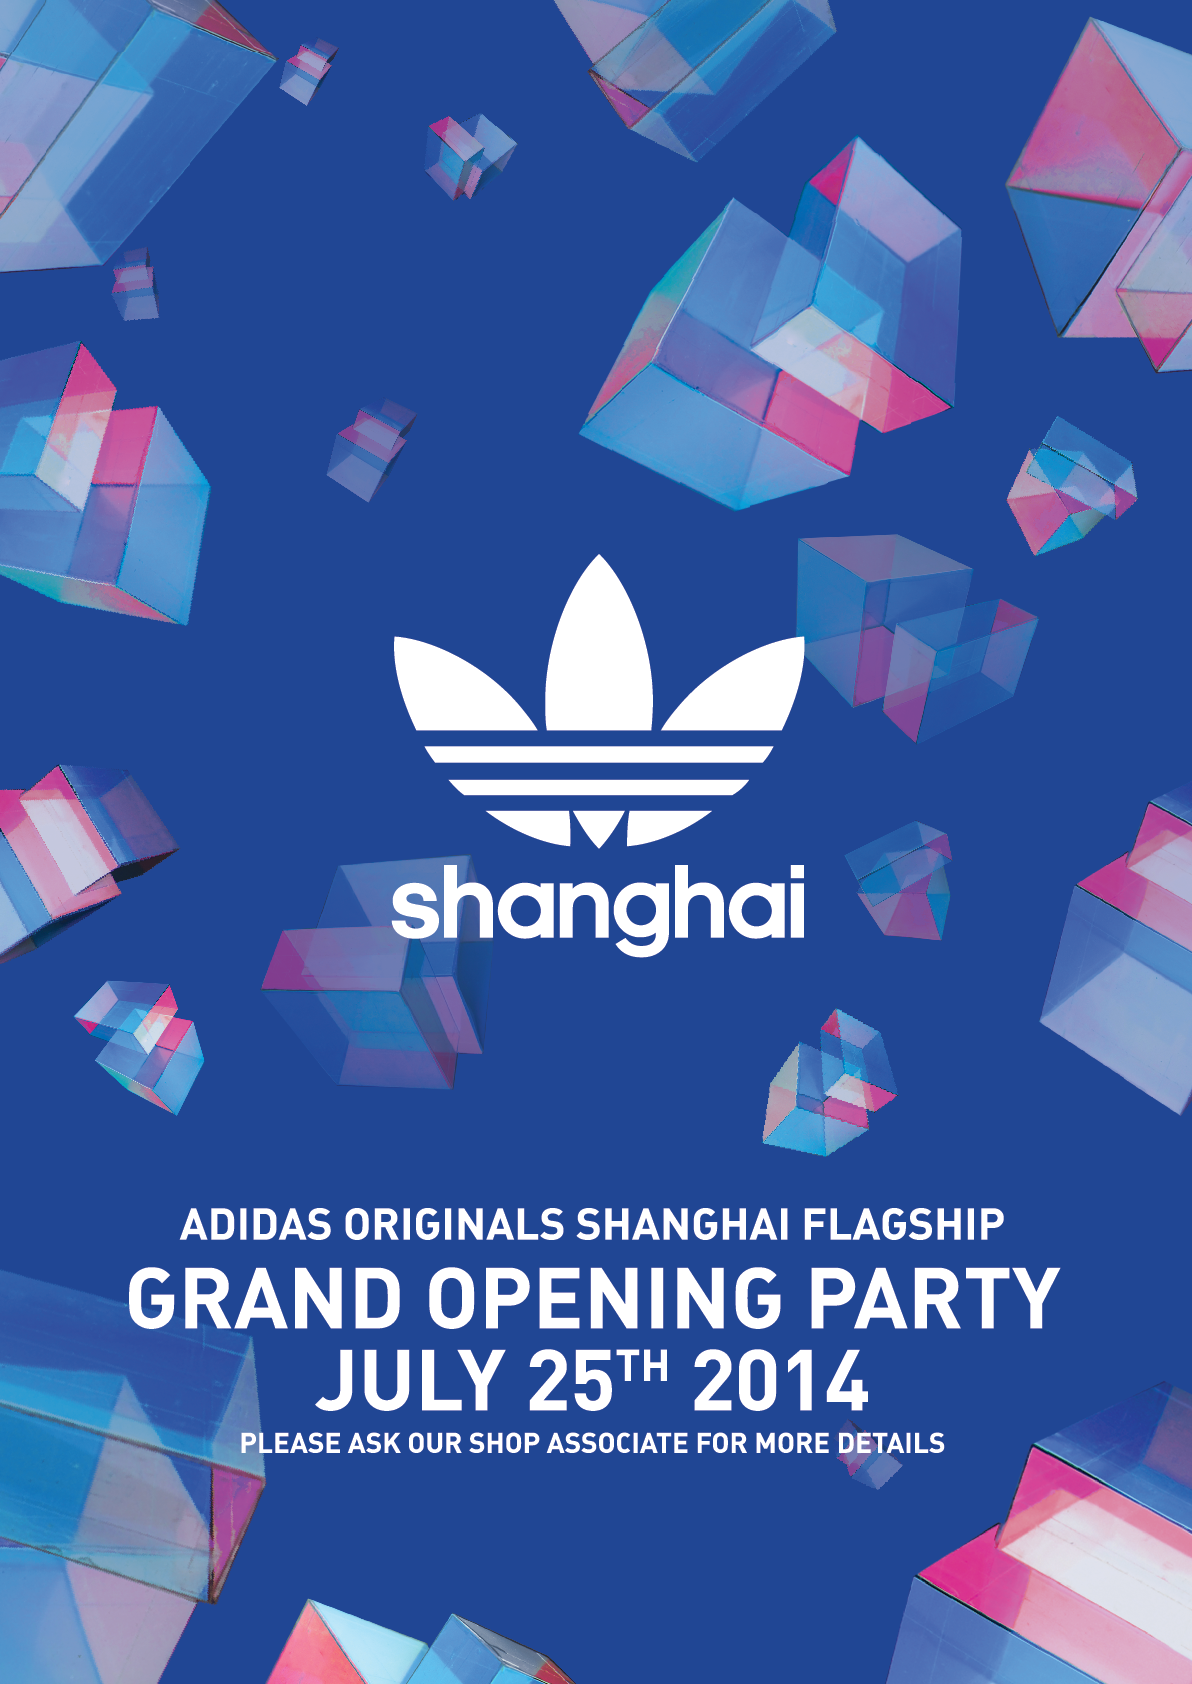 Promotion design items by Name&Name for Adidas Originals